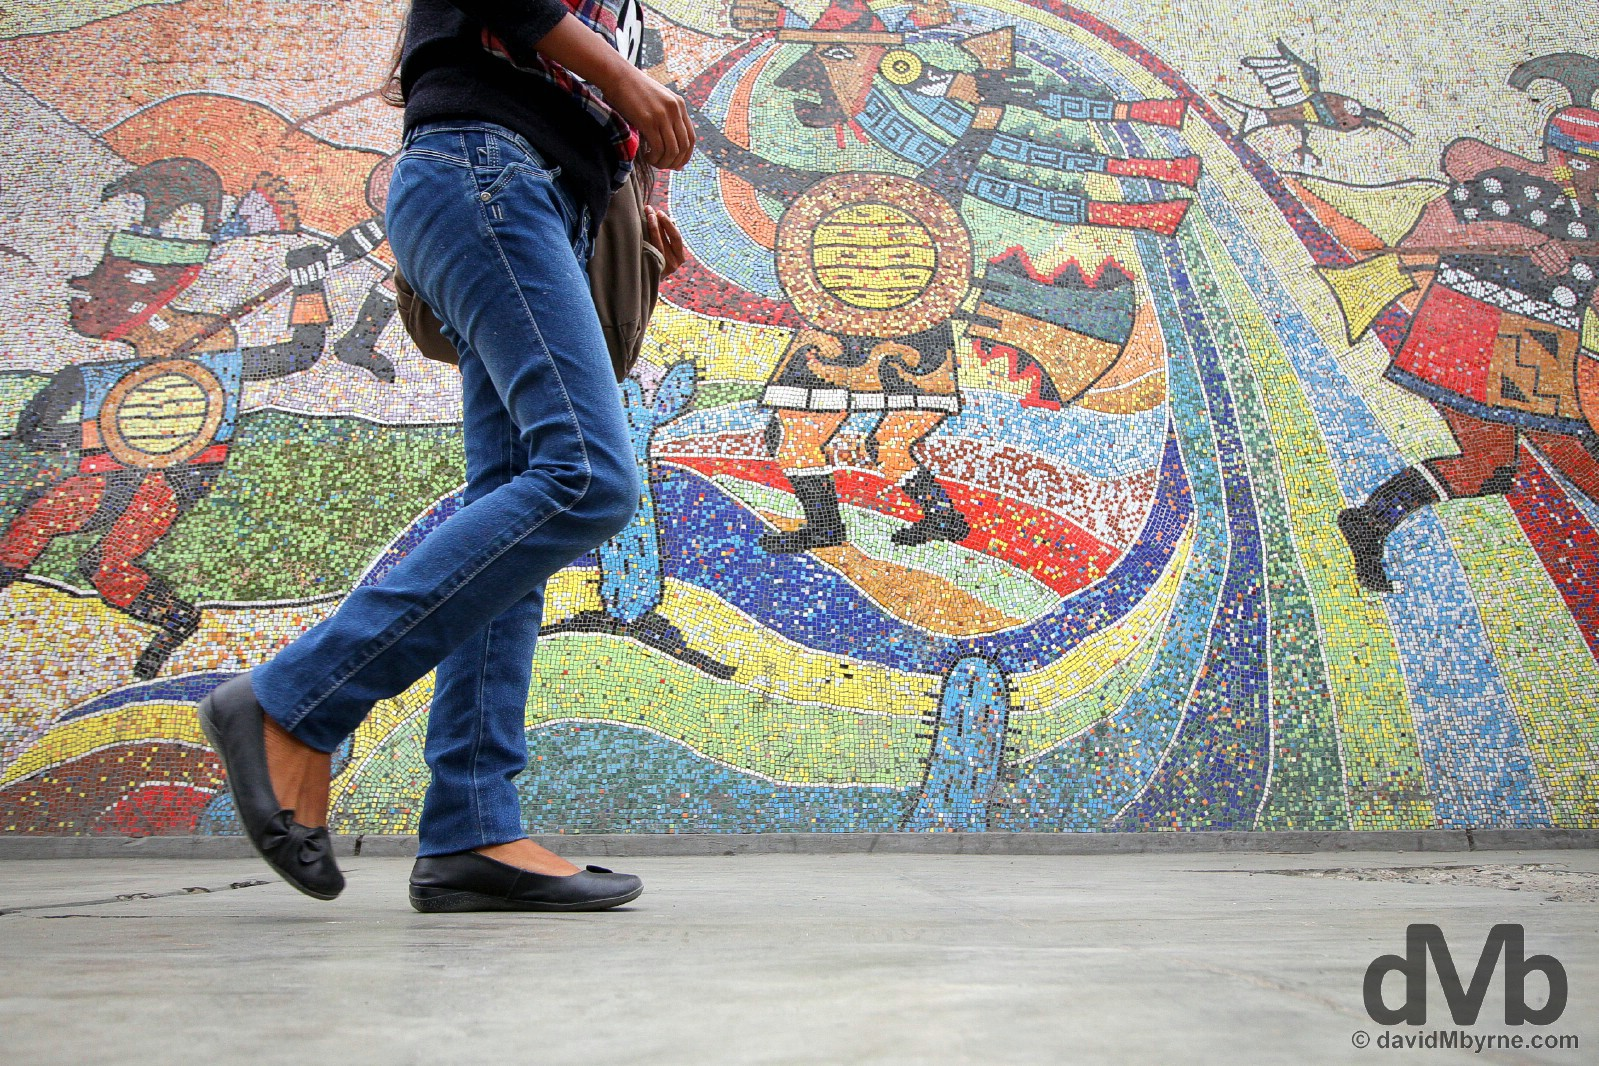 Walking past the mosaic on the walls of the Universidad Nacional de Trujillo in Trujillo, northwestern Peru. August 1, 2015.